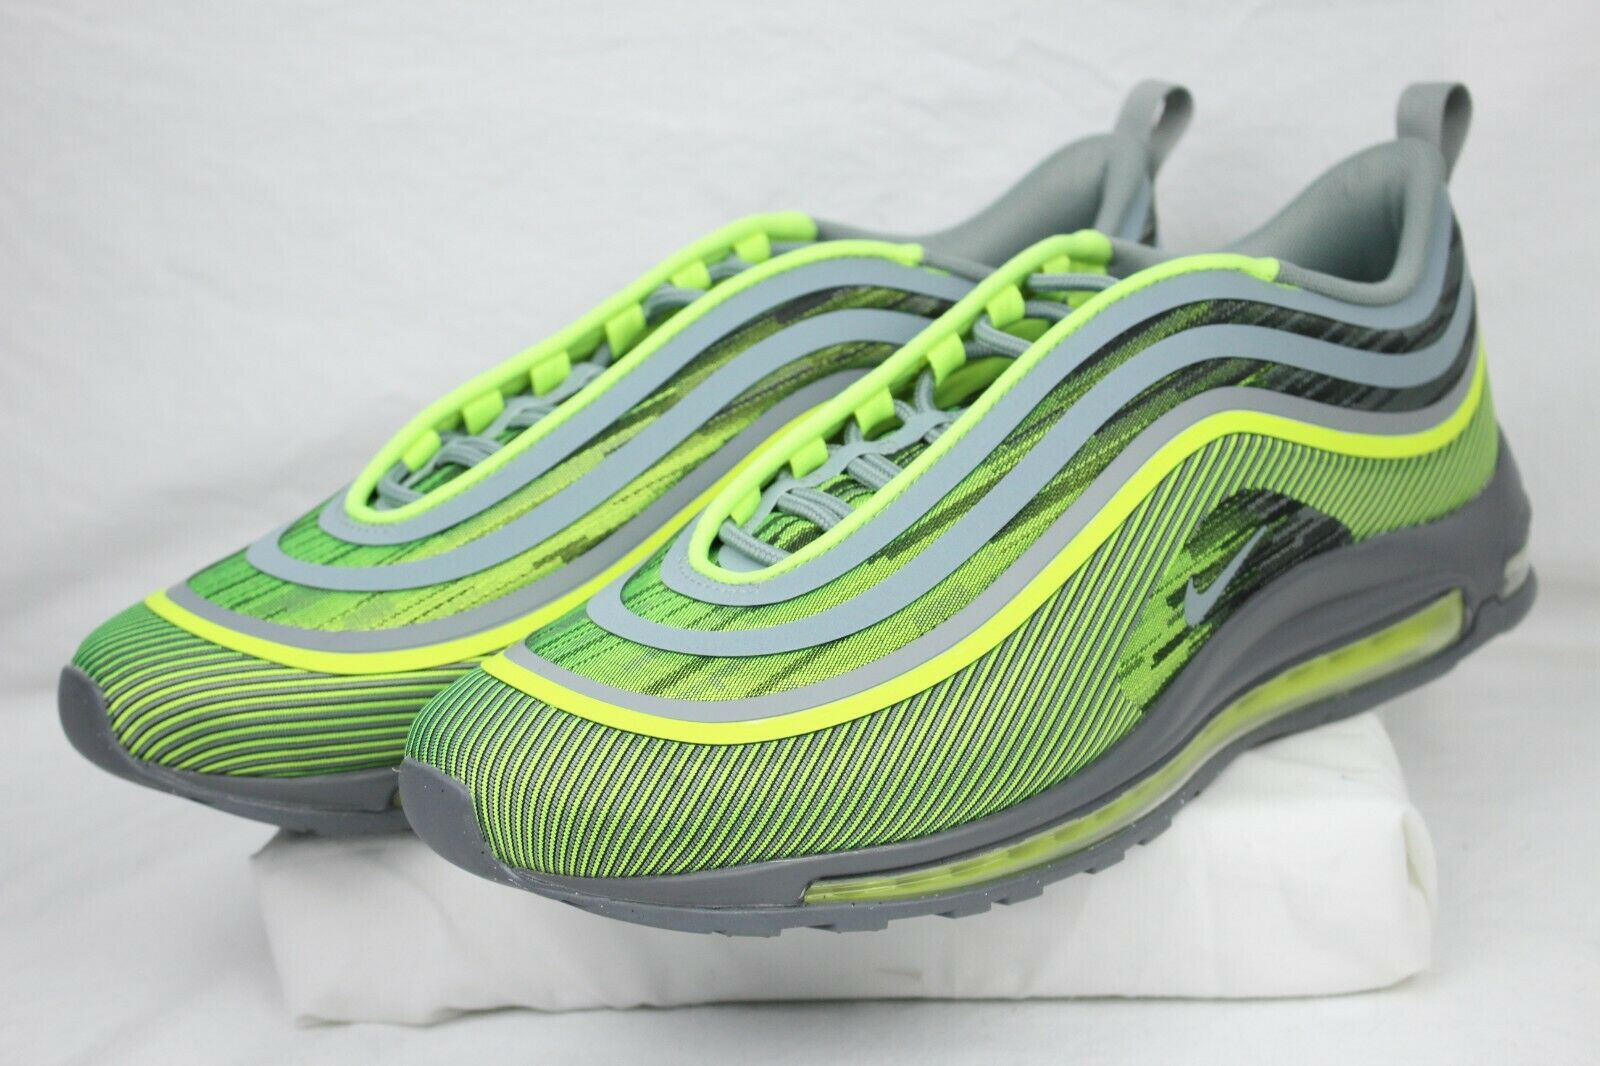 NEW AUTHENTIC NIKE Air Max 97 Ultra '17 Volt And Mica Green 918356 701 Sz 9 Rare